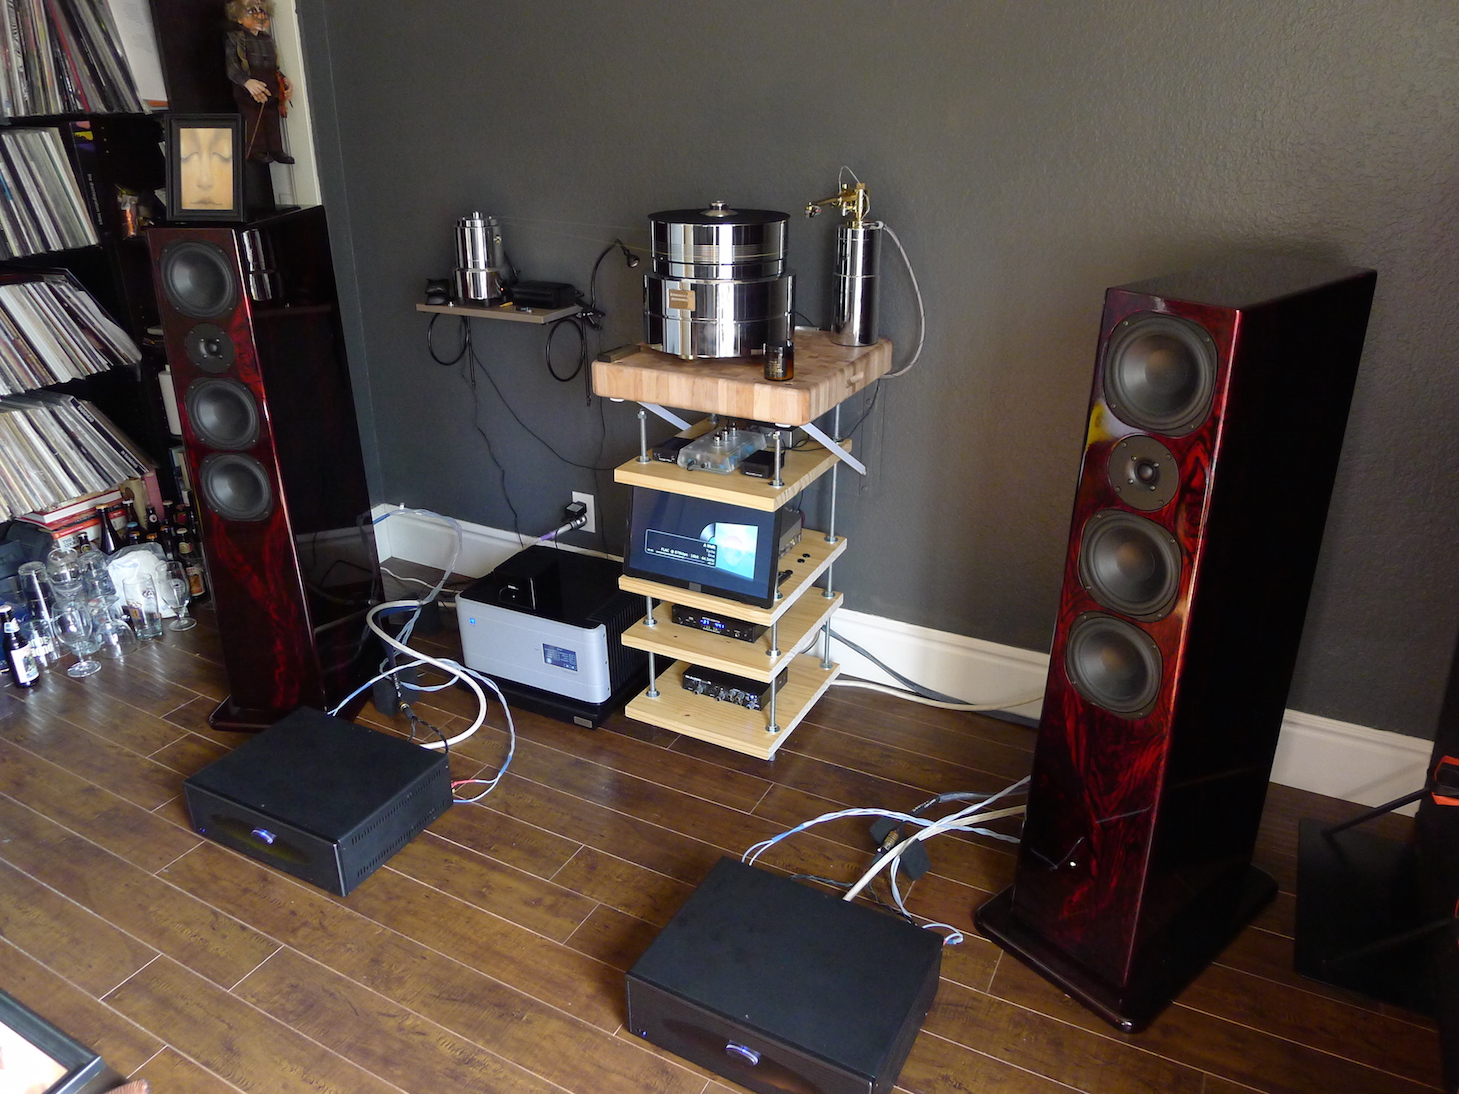 http://audiophilereview.com/images/diffears4a.jpg